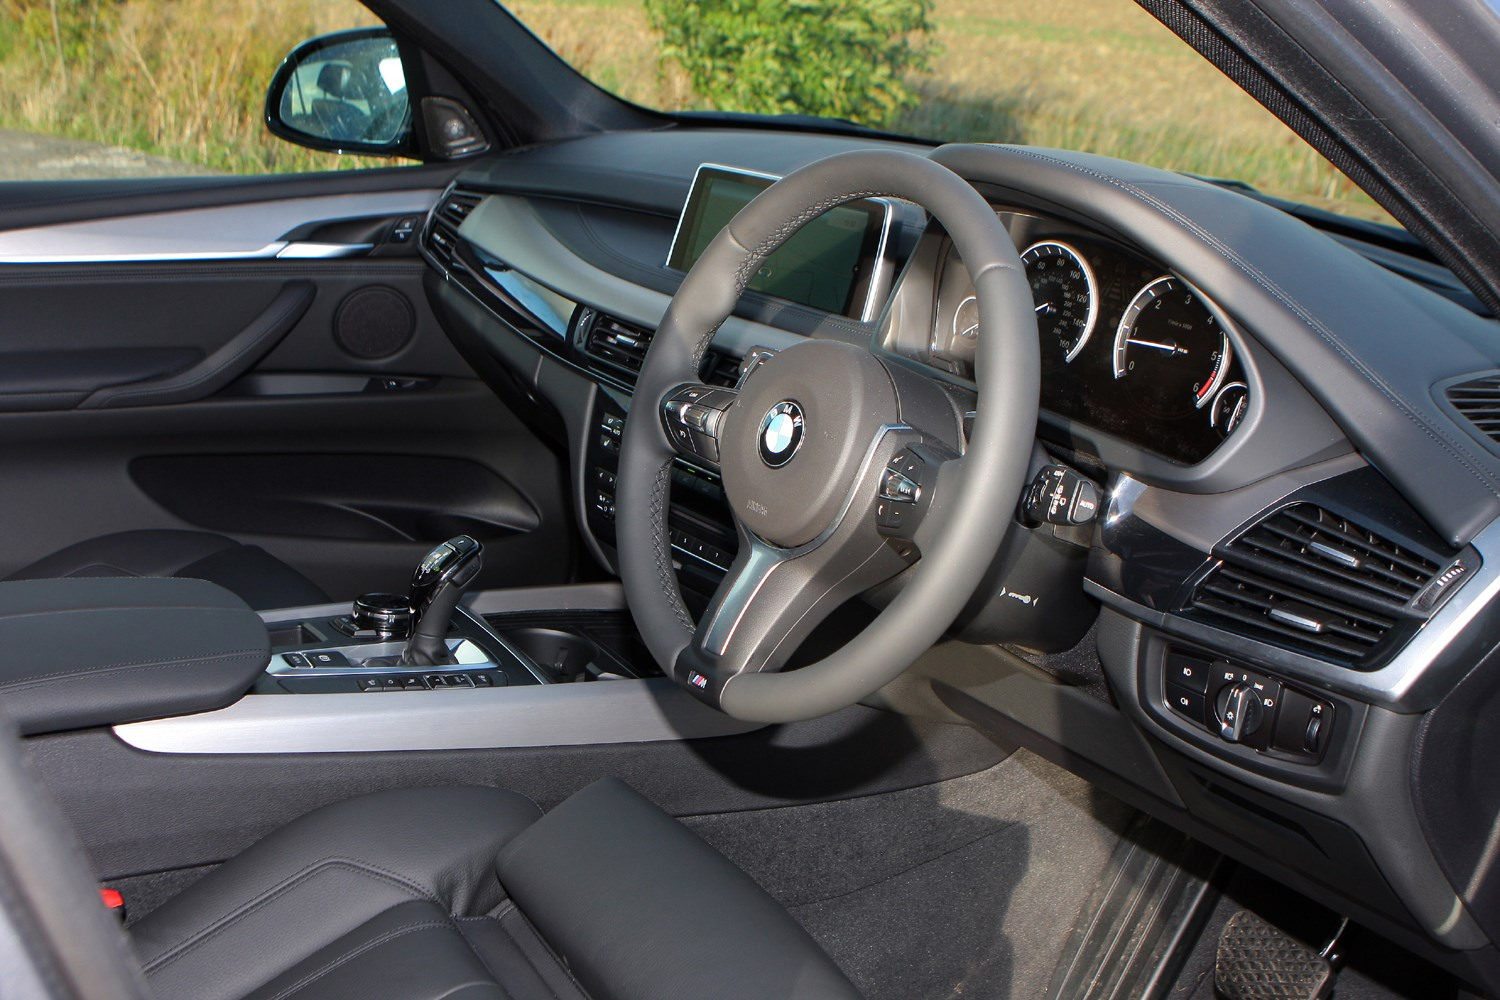 bmw x5 4x4 2013 features equipment and accessories. Black Bedroom Furniture Sets. Home Design Ideas